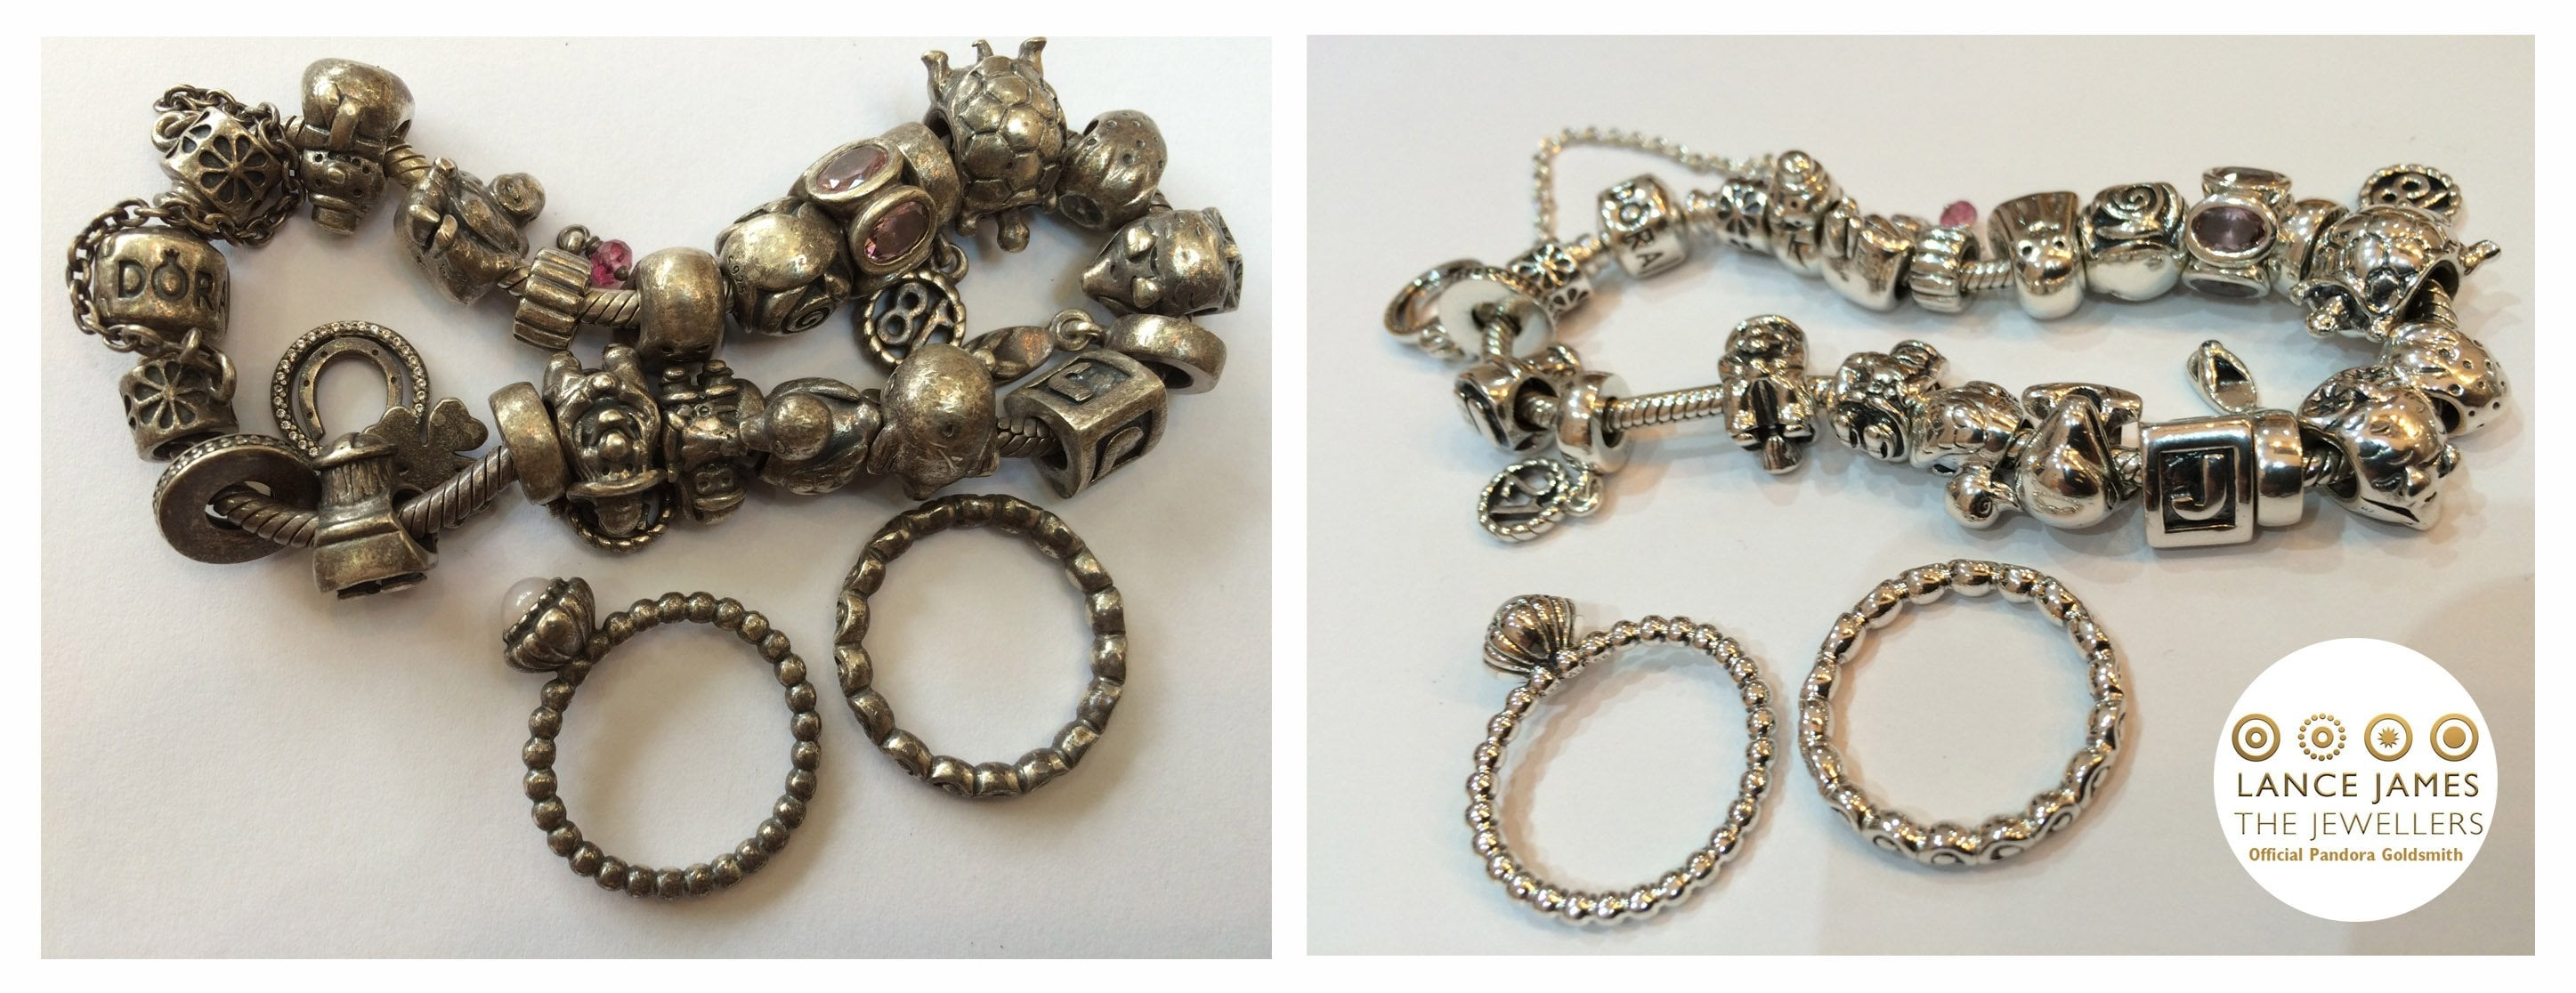 853e4db0a All your charms are brought back to life and often for the first time the  complete bracelet is all shiny and new together!